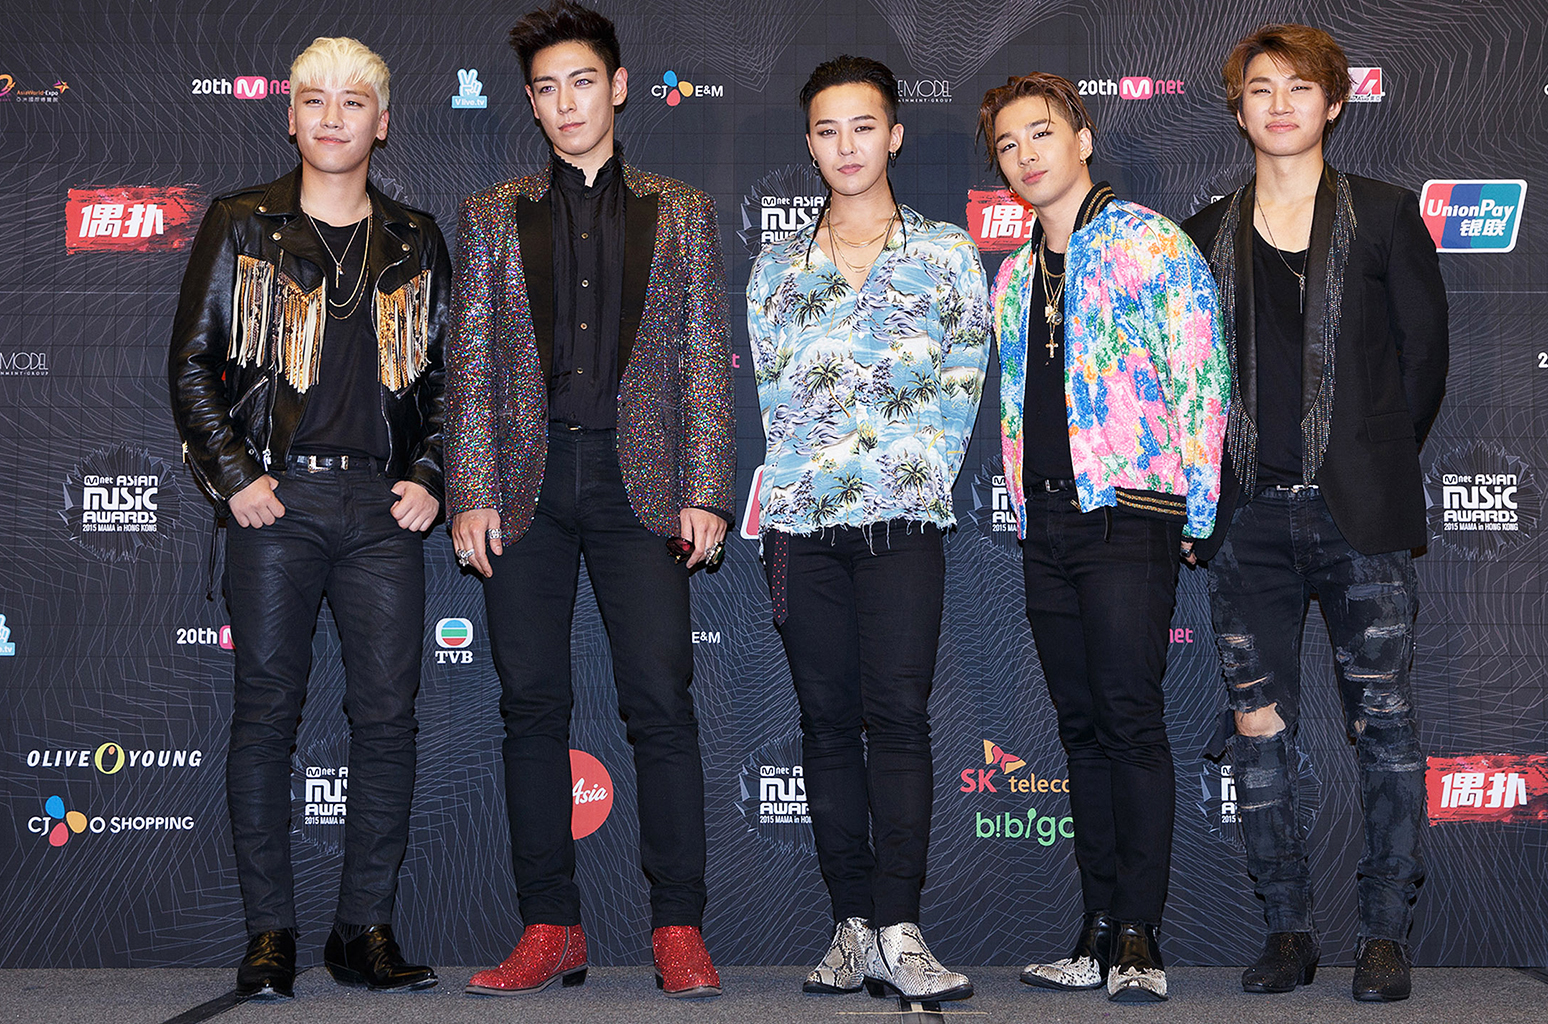 BIGBANG Set to End Hiatus with Coachella Announcement: Details inside